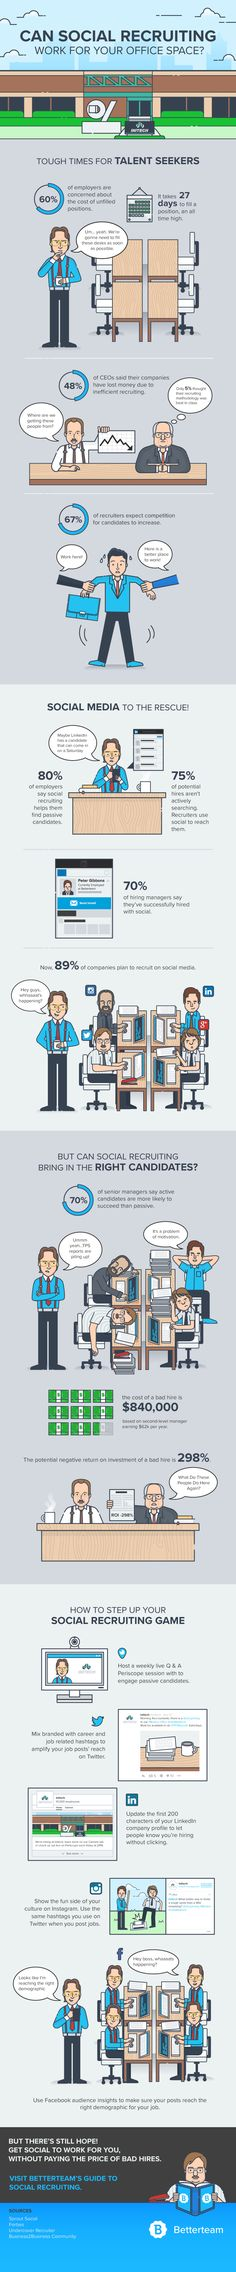 Can Social Recruiting Work for Your Office Space? #Infographic #Career #Job…